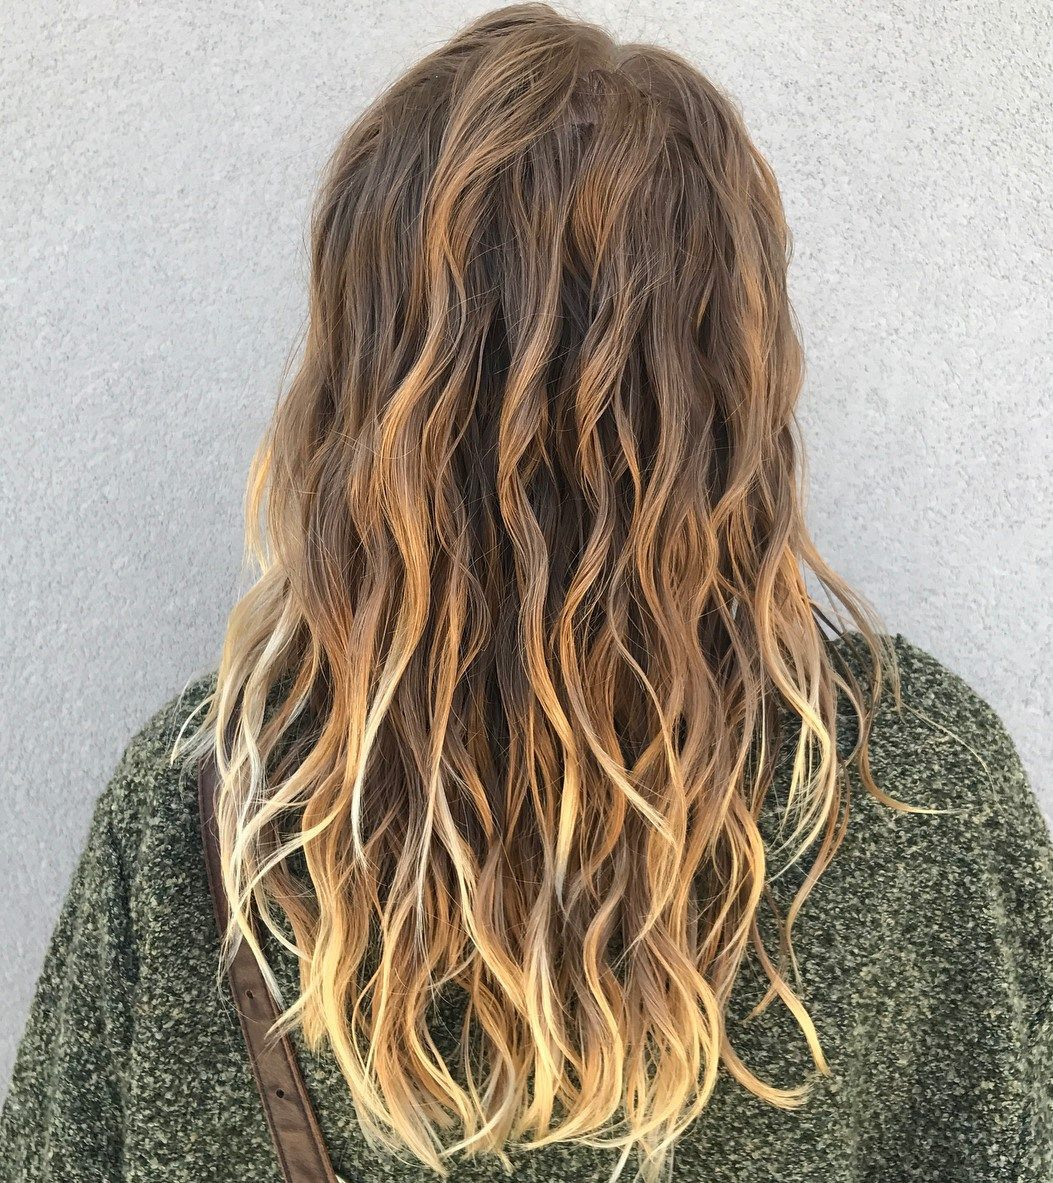 50 Gorgeous Perms Looks Say Hello To Your Future Curls Beach